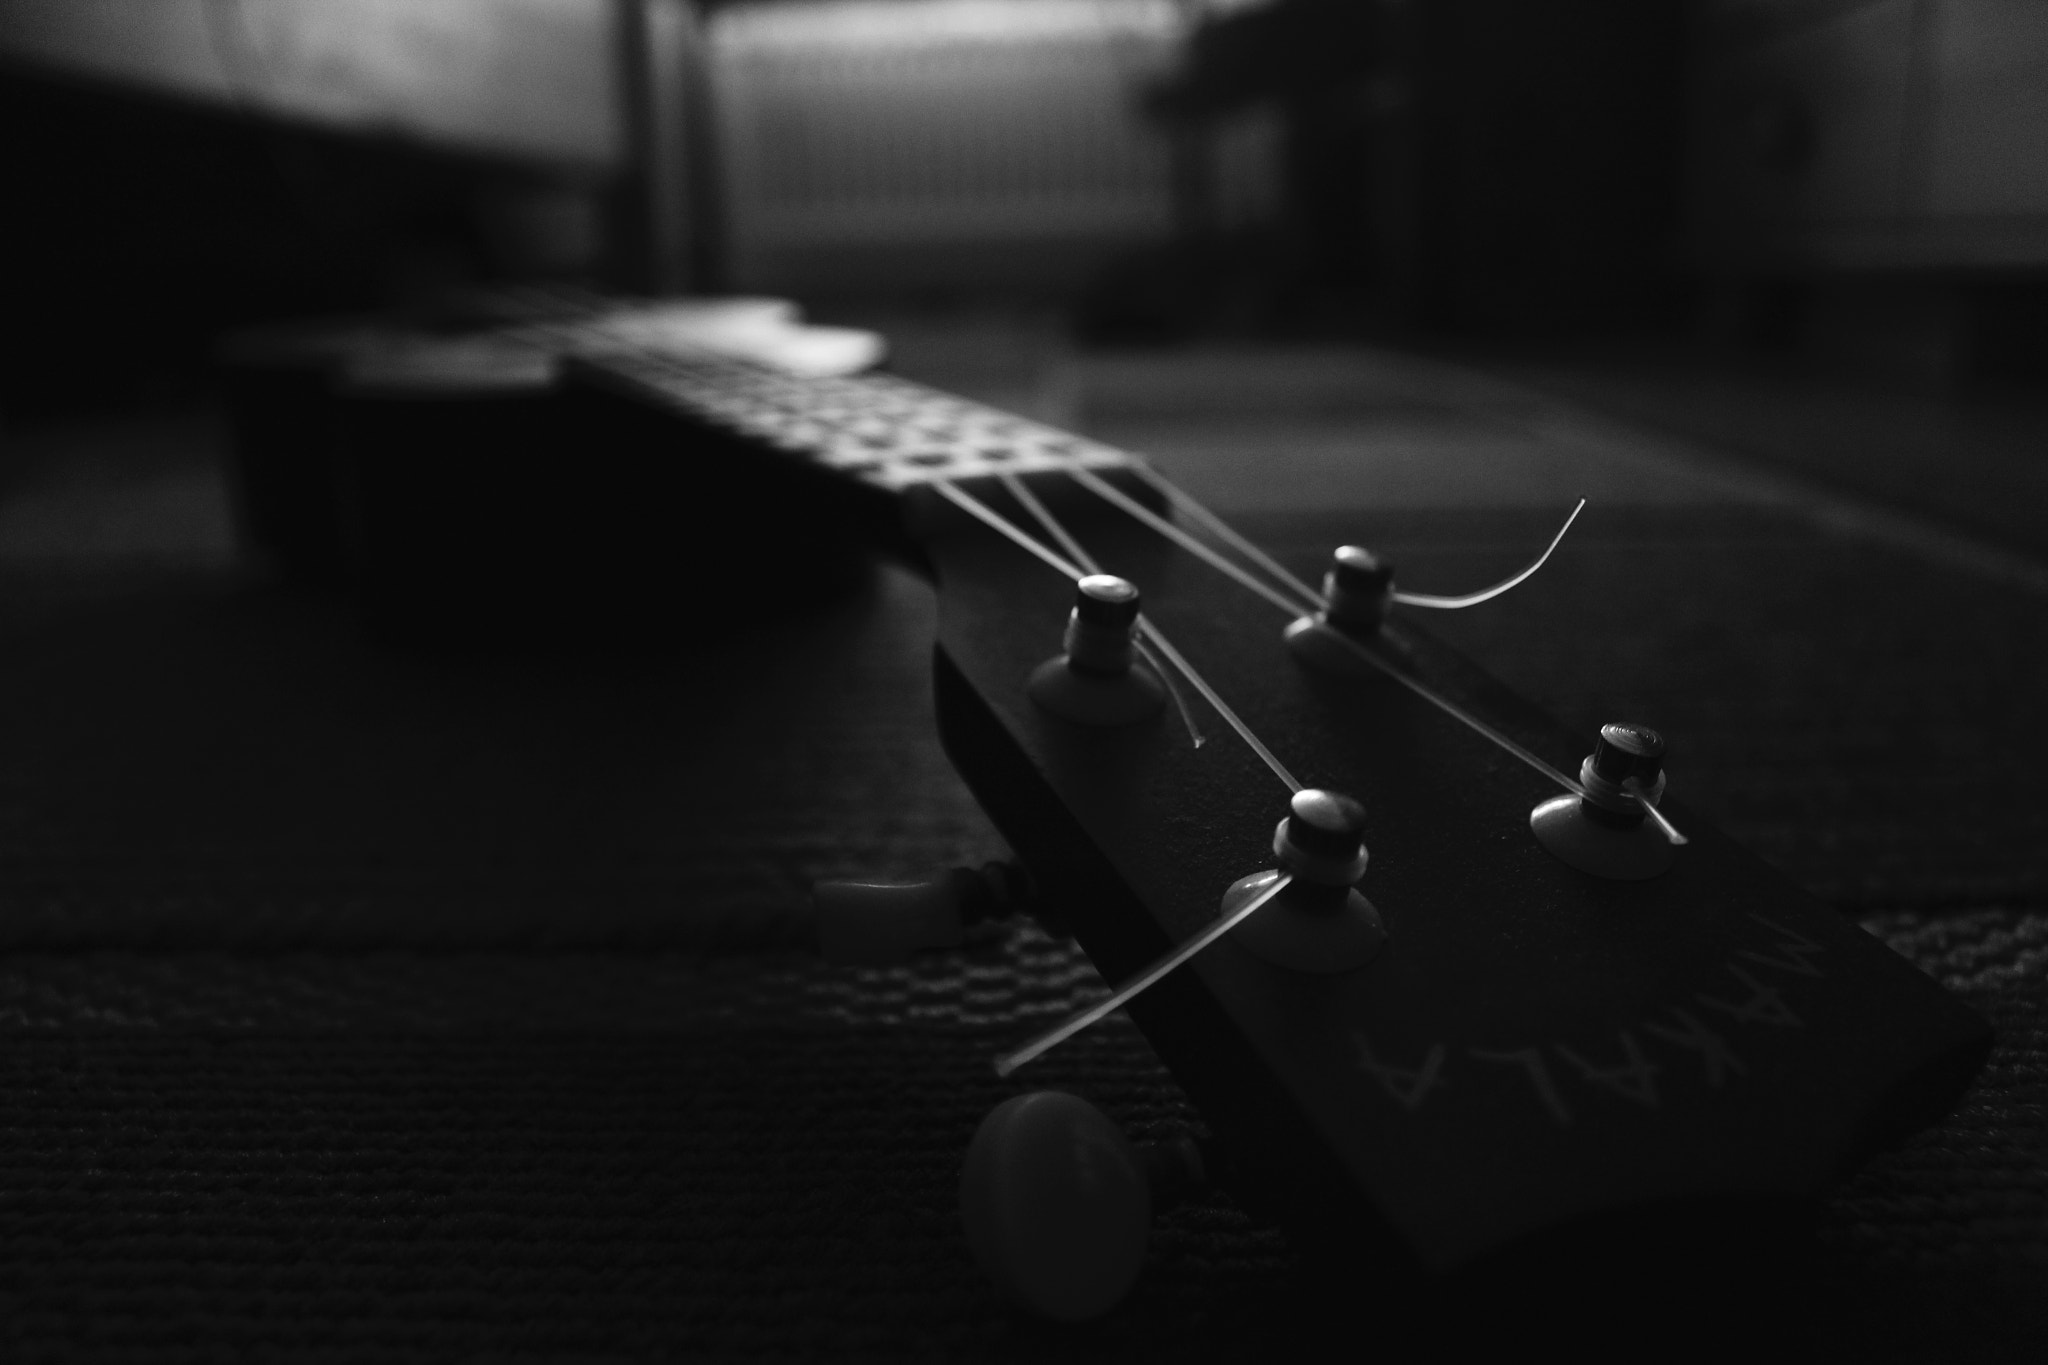 Photograph Photographers paint their pictures on Cameras. But musicians paint their pictures on silence. (♥) by Marcus Miess on 500px